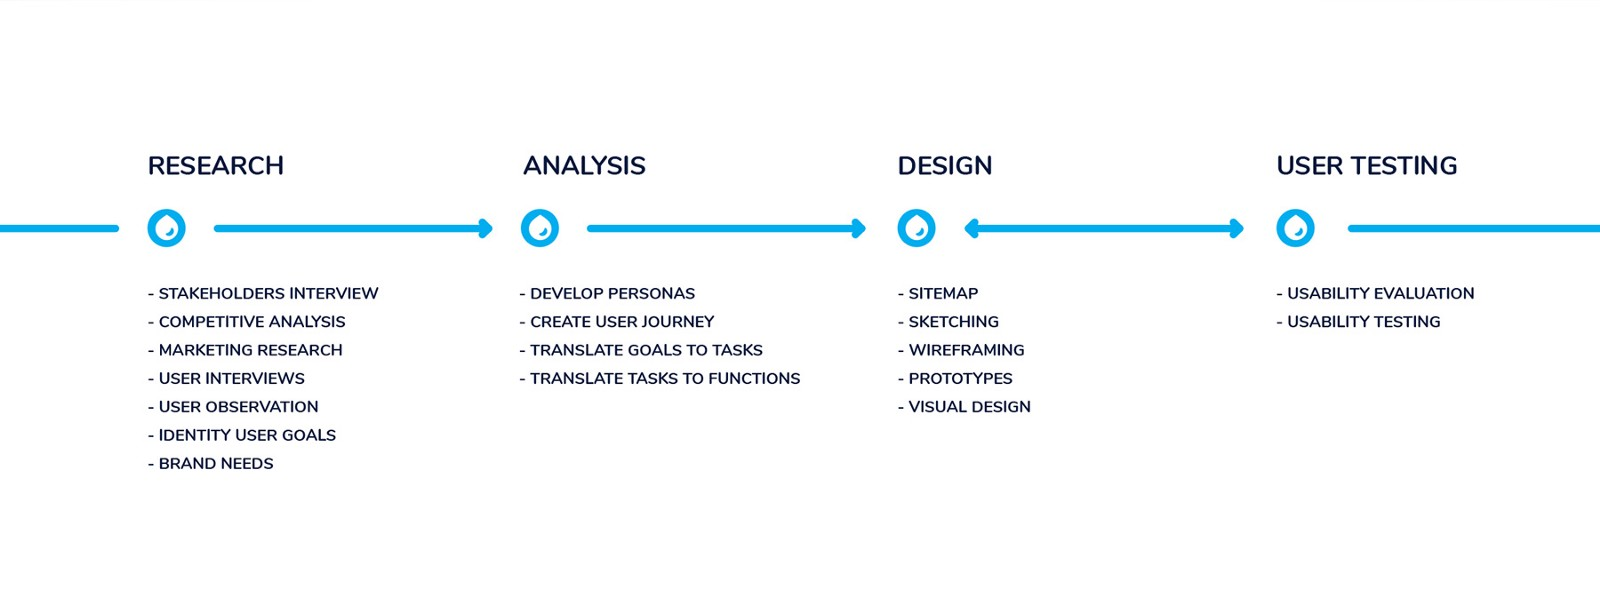 Ui Ux Design Process Noteworthy The Journal Blog Flow Diagram User Experience For Me Is Of Enhancing Satisfaction With A Product By Improving Usability And Pleasure Provided In